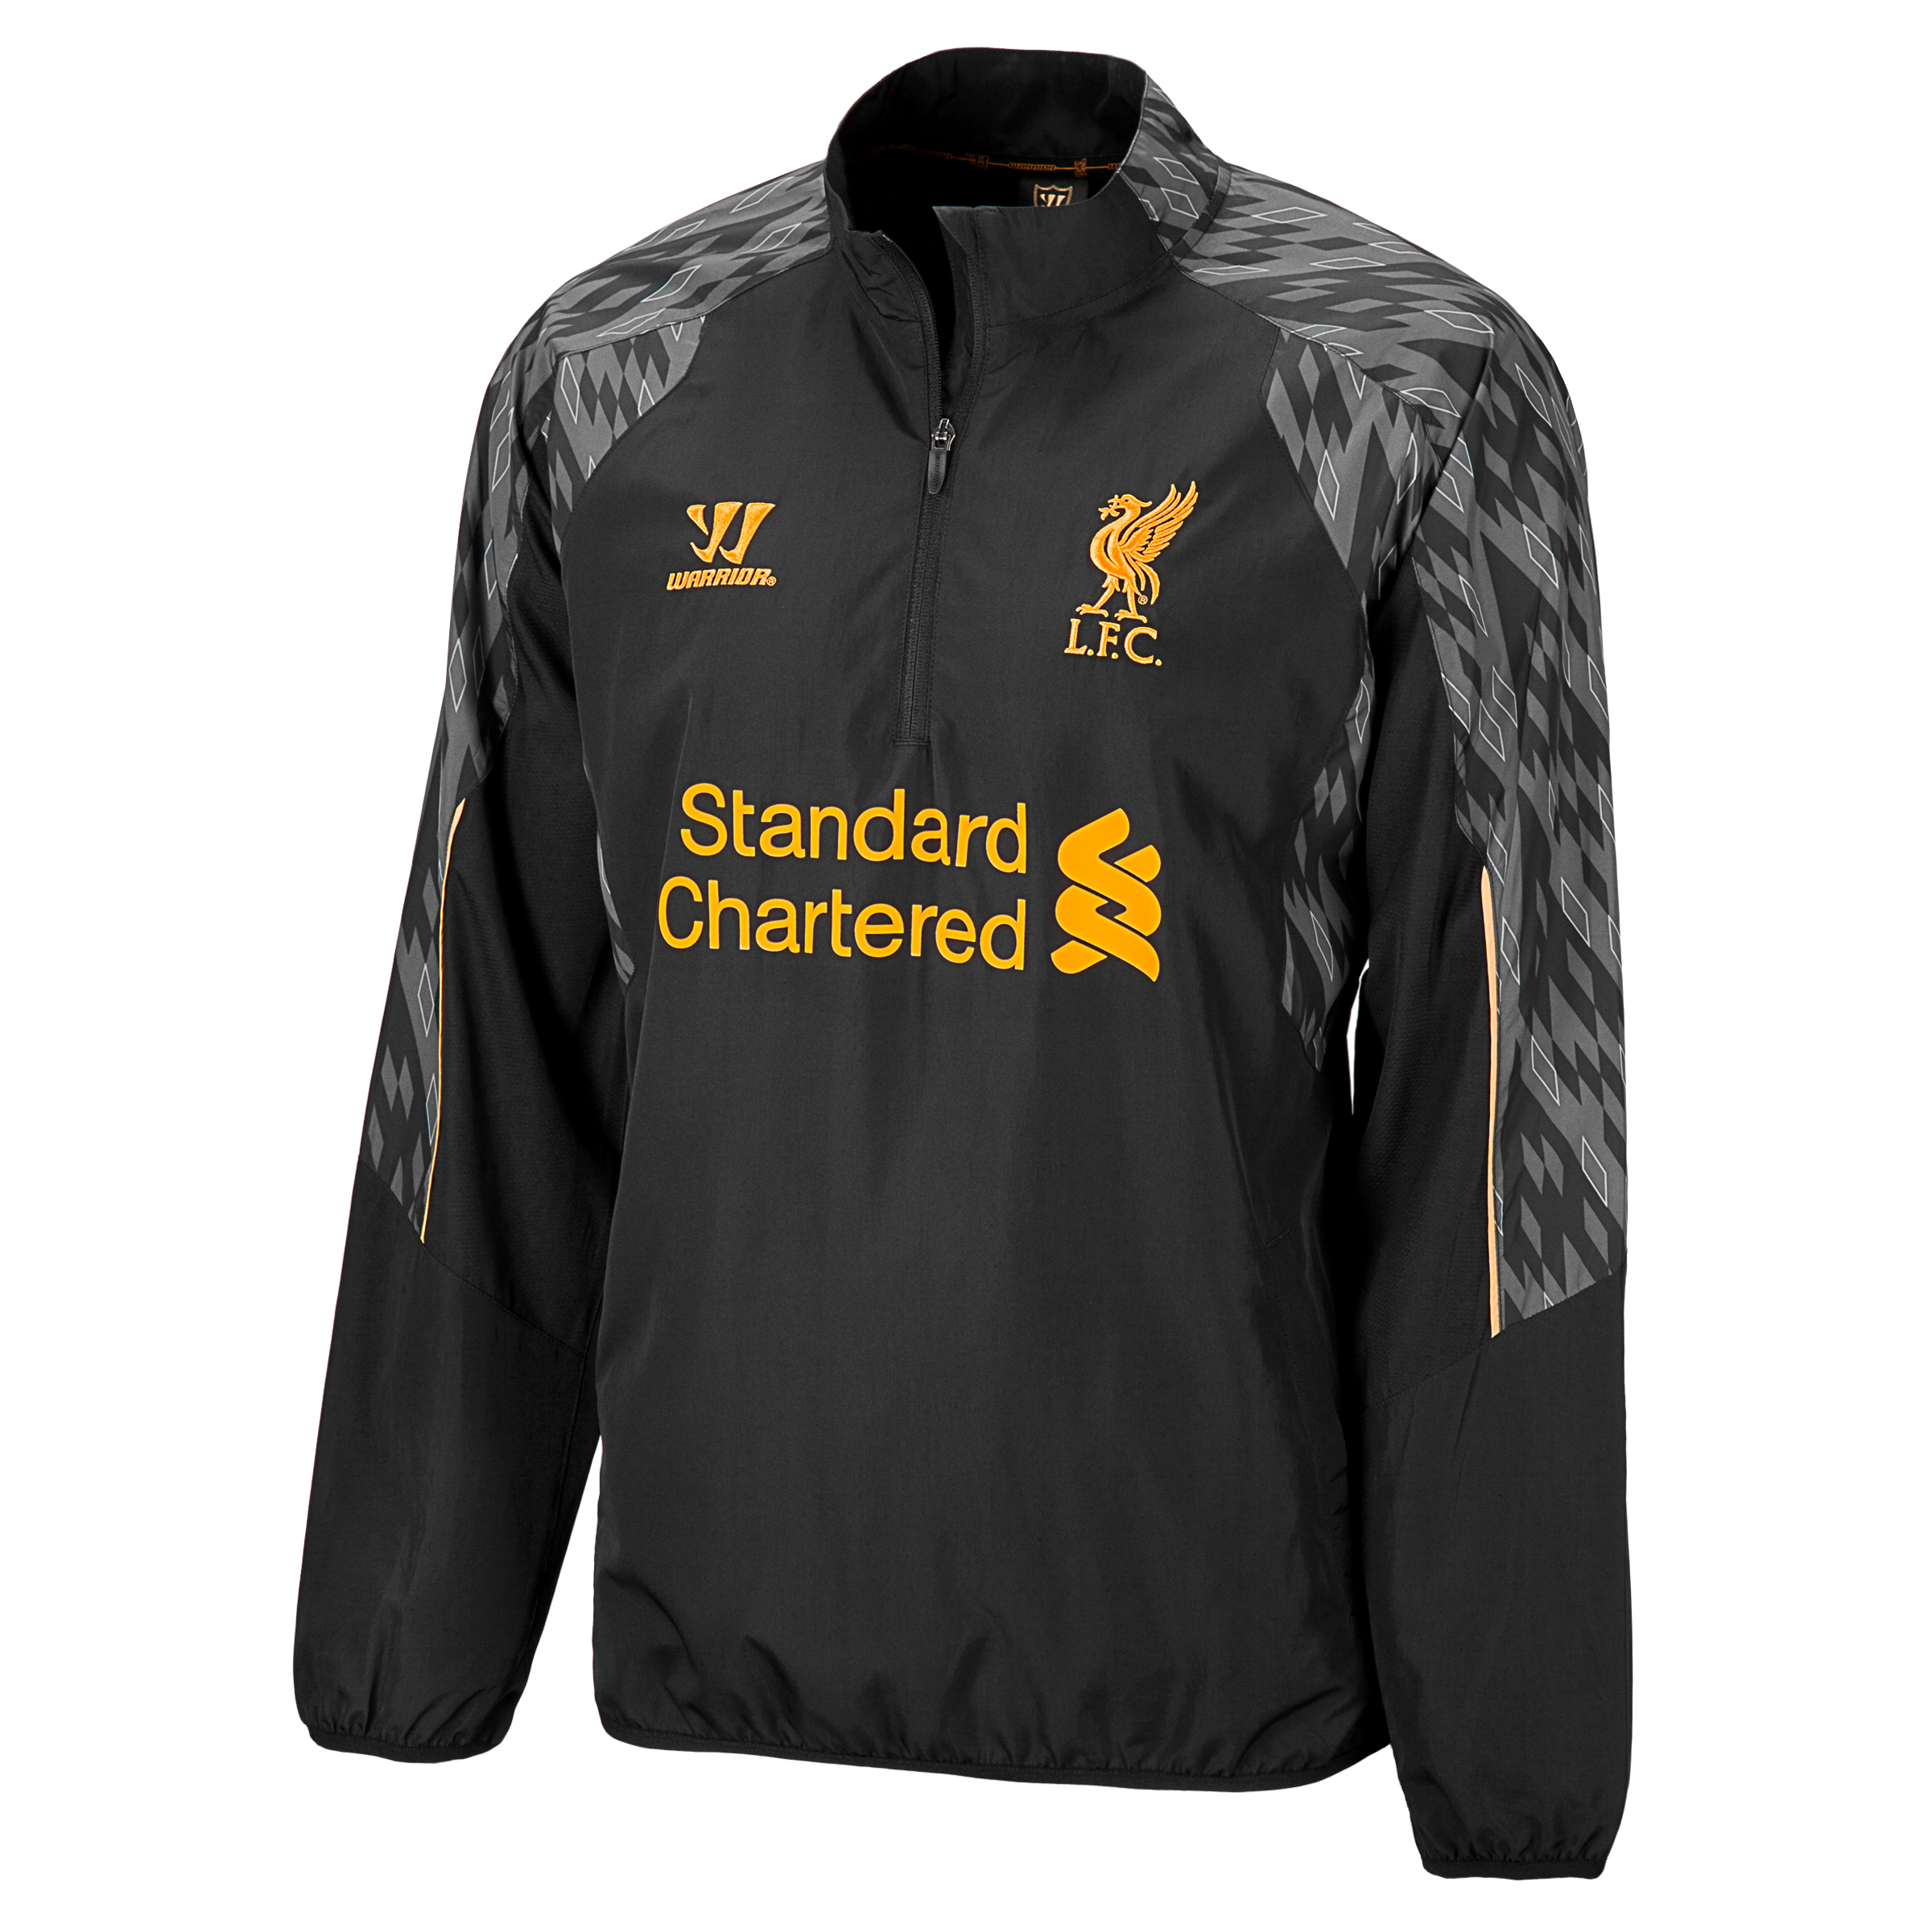 Liverpool 1/2 Zip Windbreaker Training Top - Anthracite/Silver Filigree